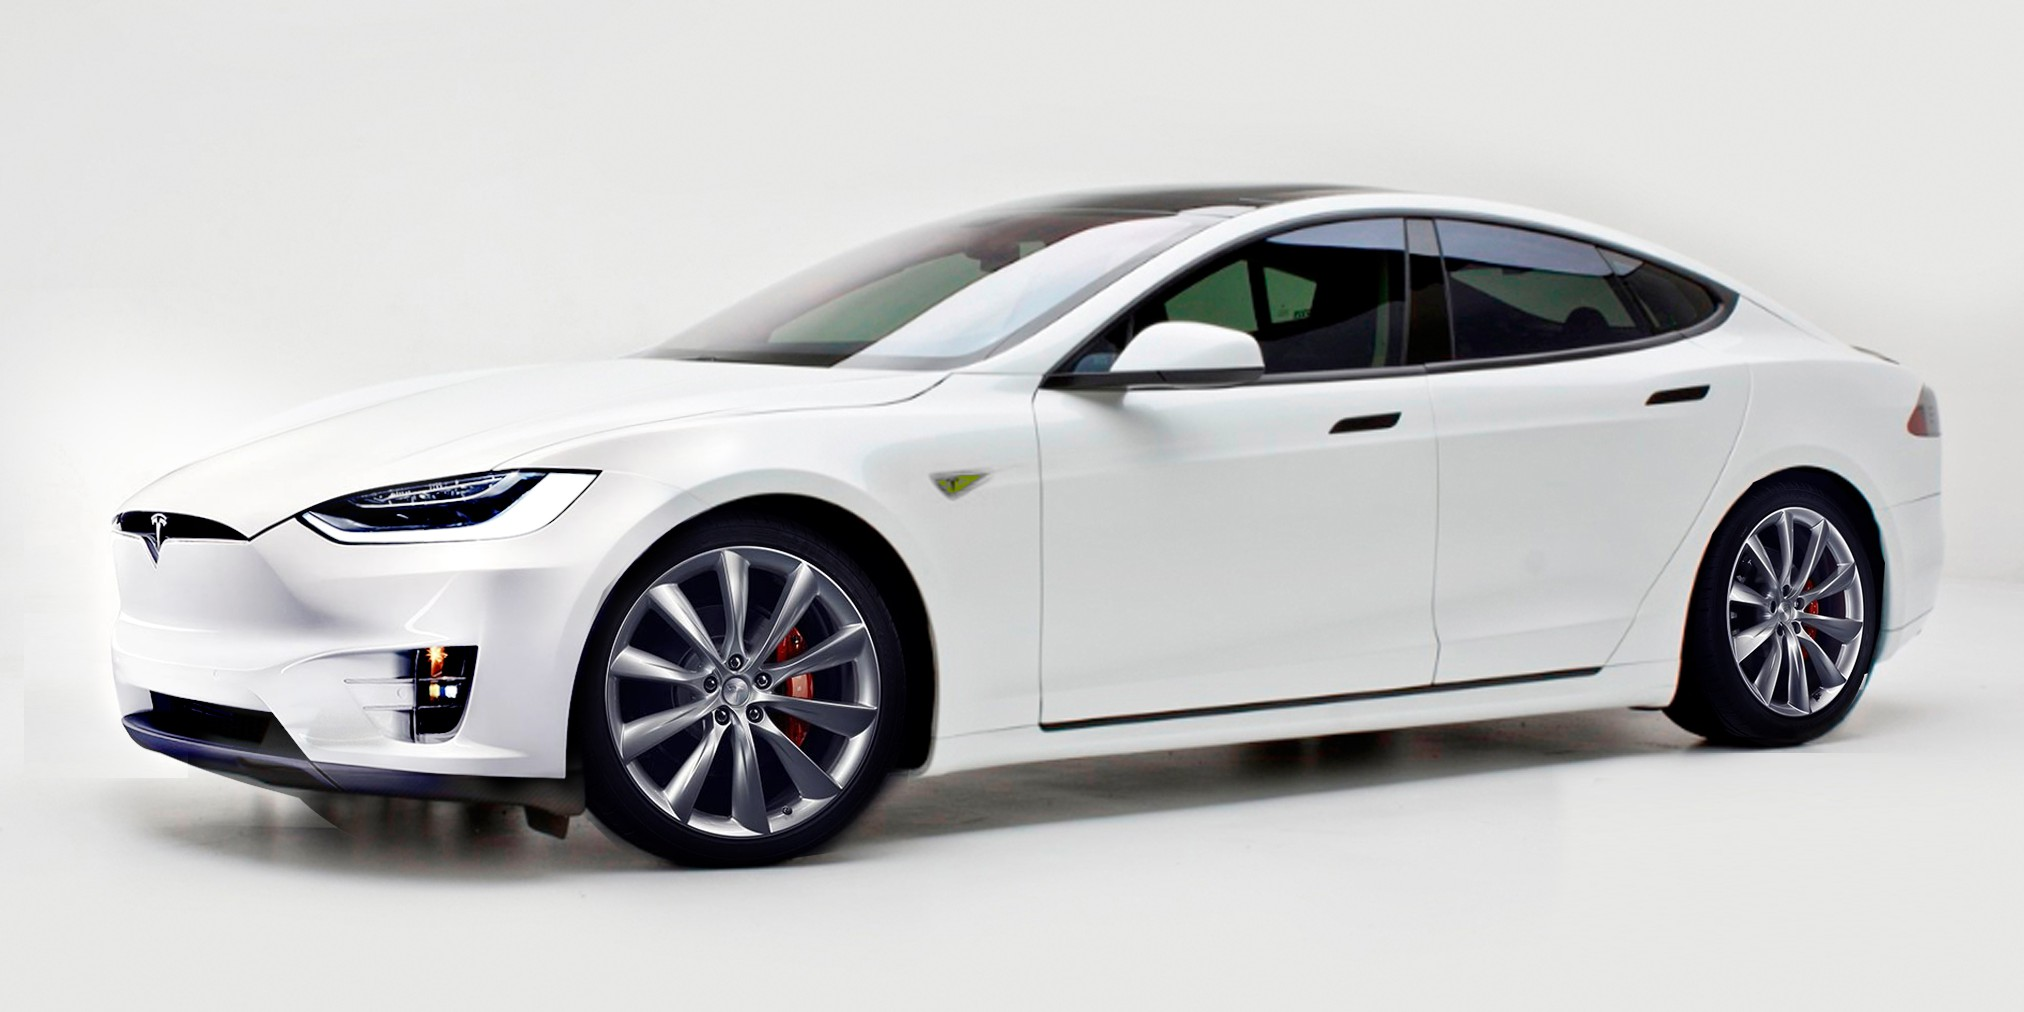 Model S with Model X design